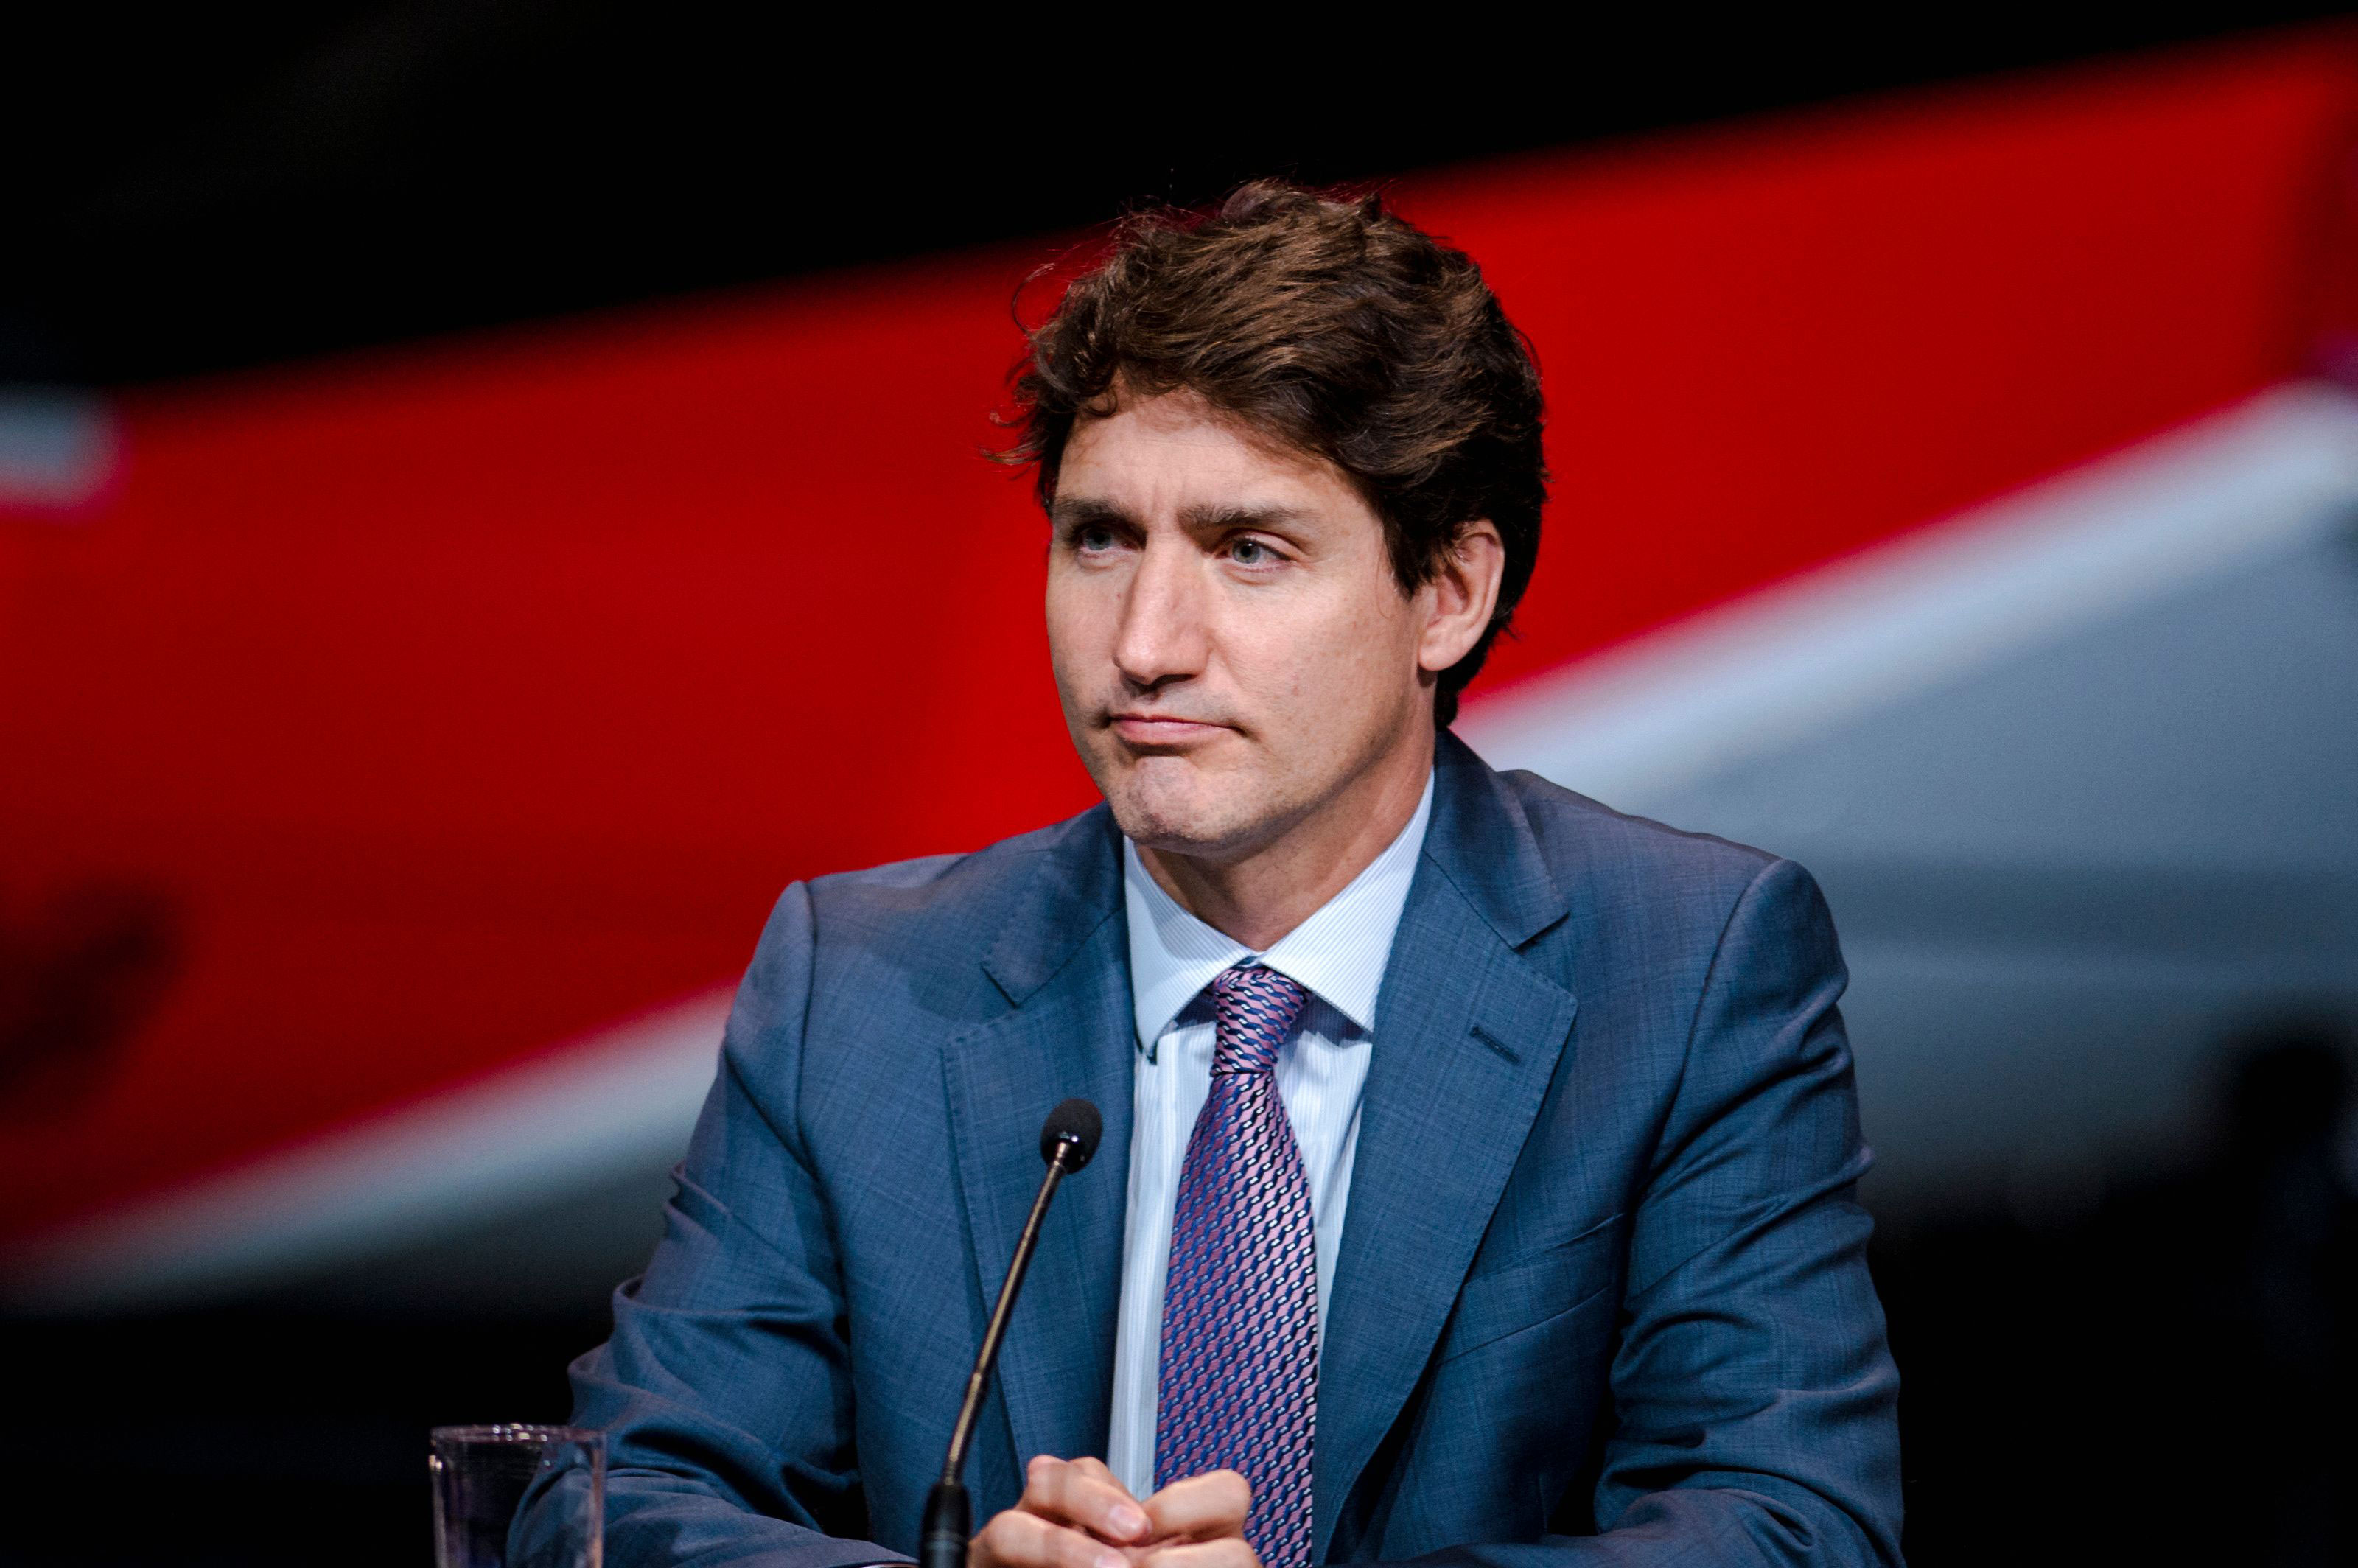 Canadian Prime Minister Justin Trudeau holds a press conference in Montreal on July 15, 2021.